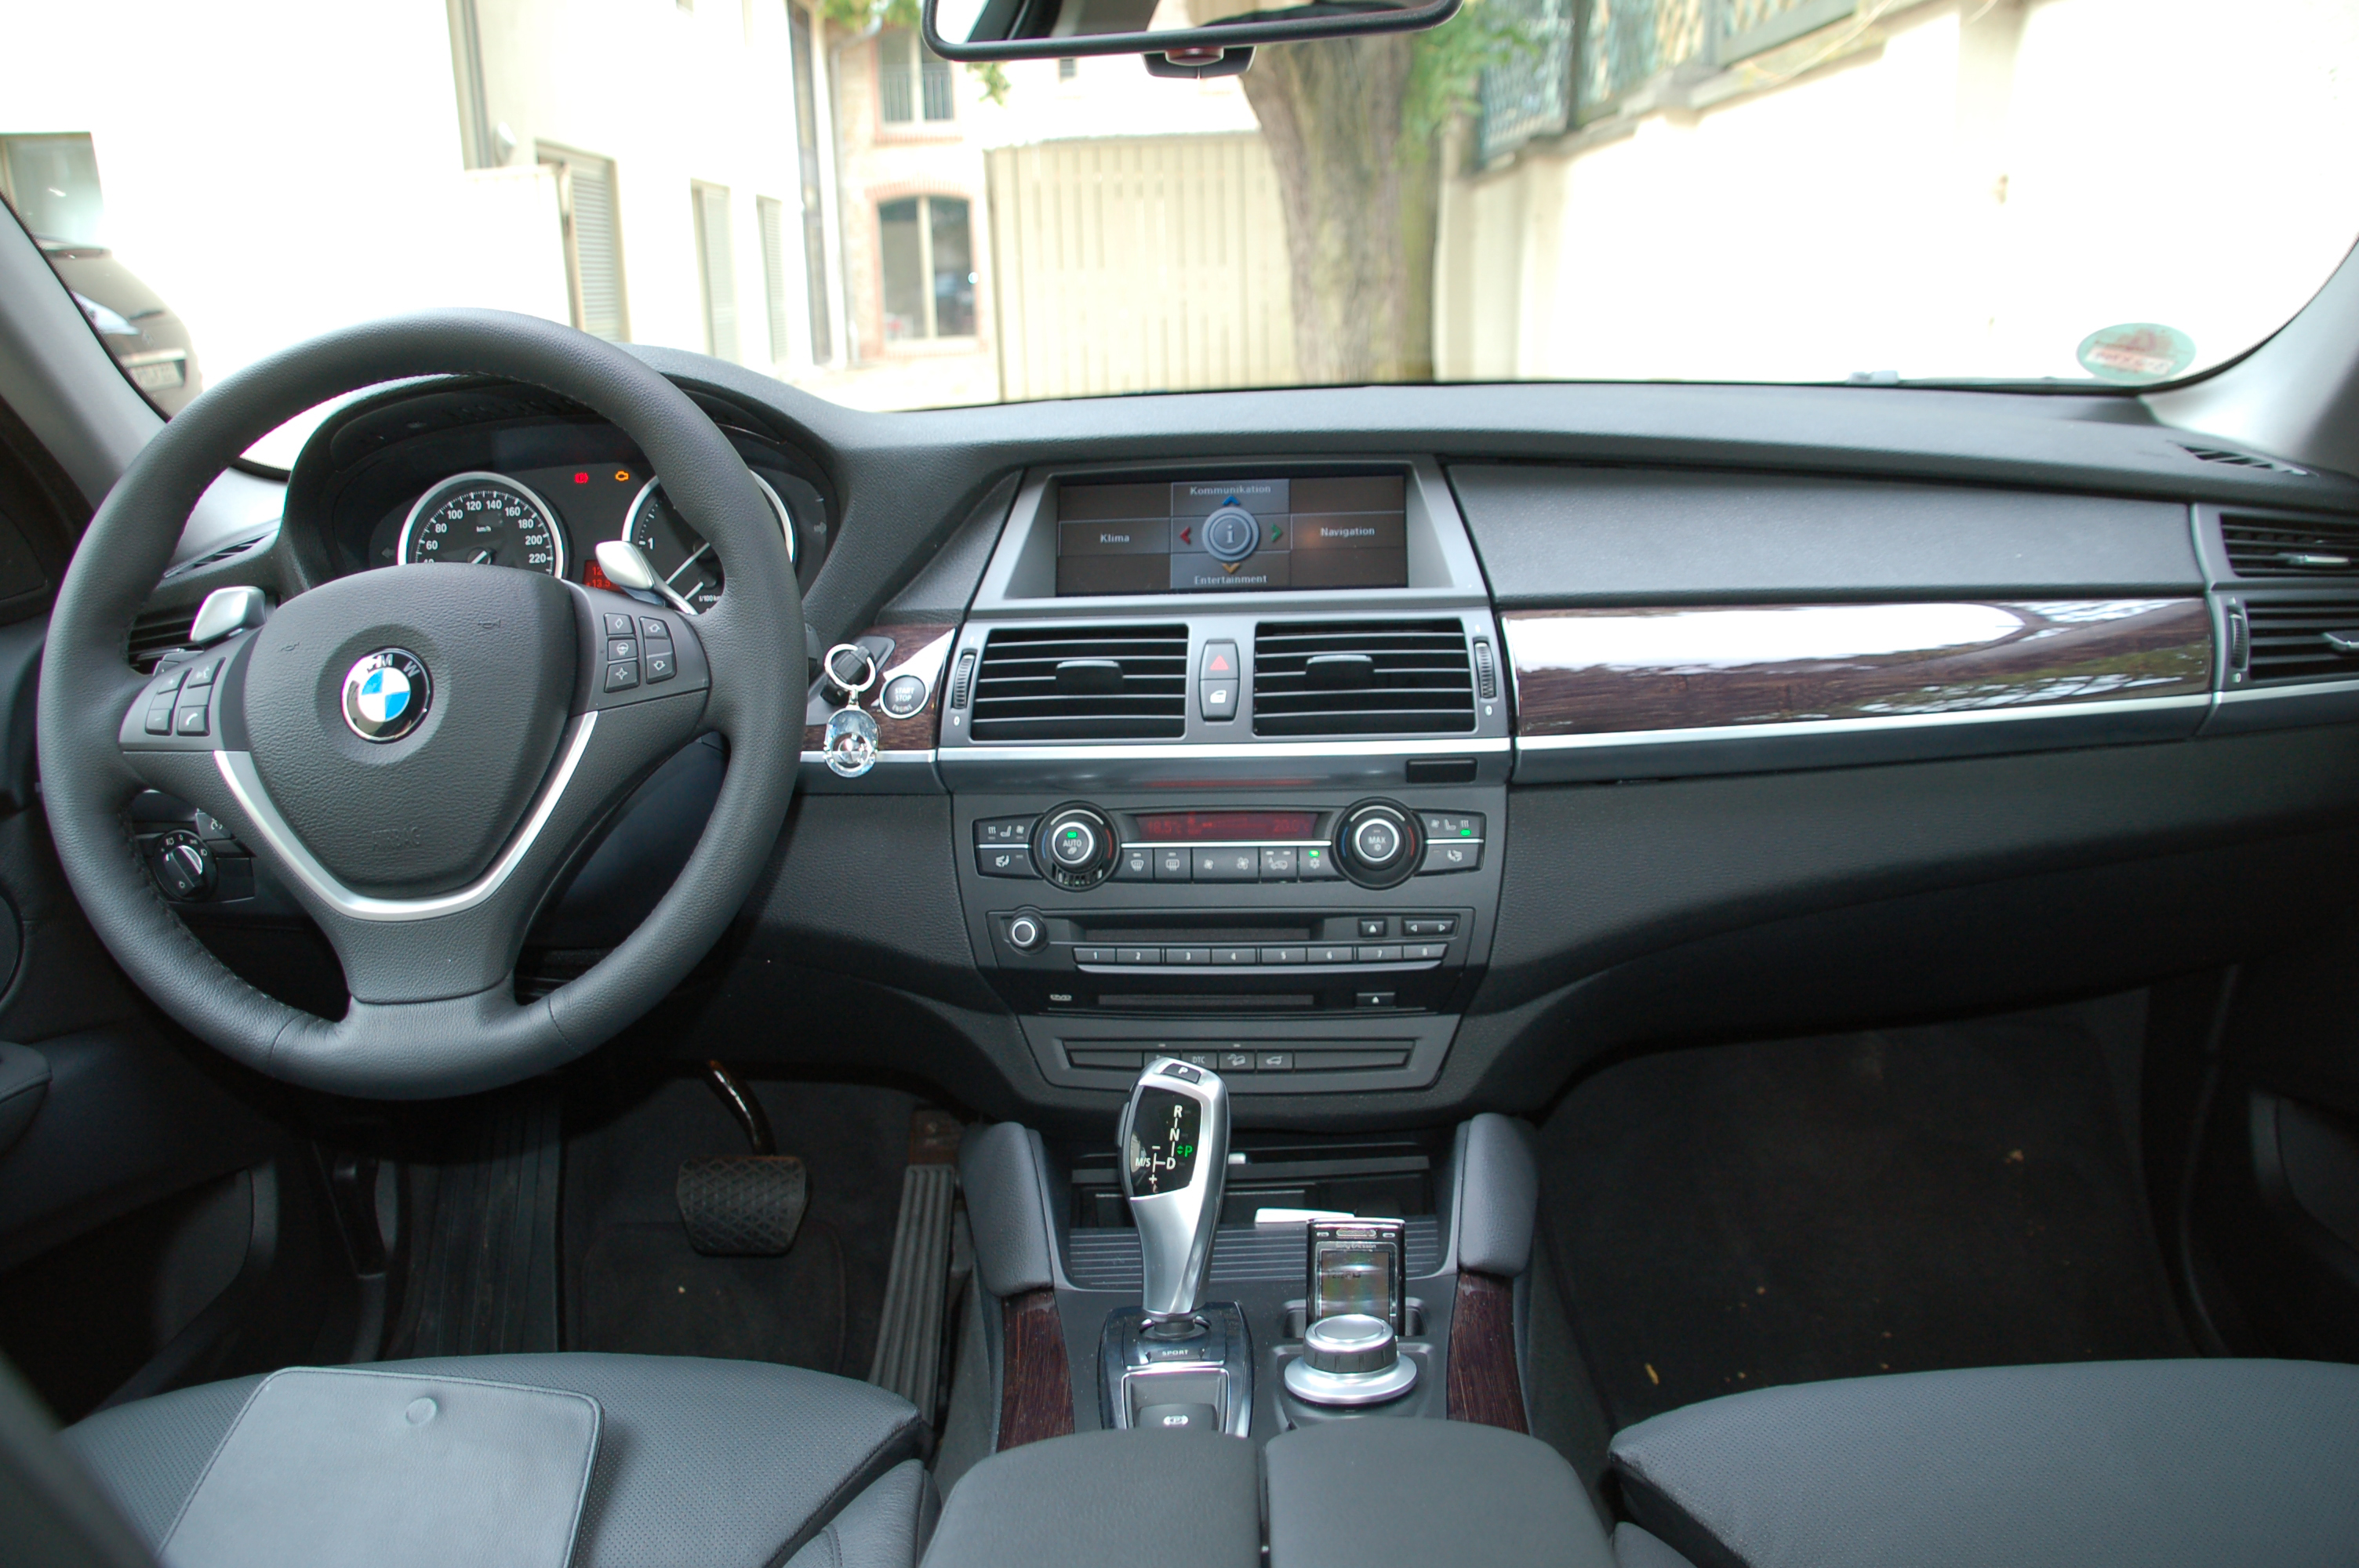 File Bmw X6 Xdrive35d Cockpit Jpg Wikimedia Commons